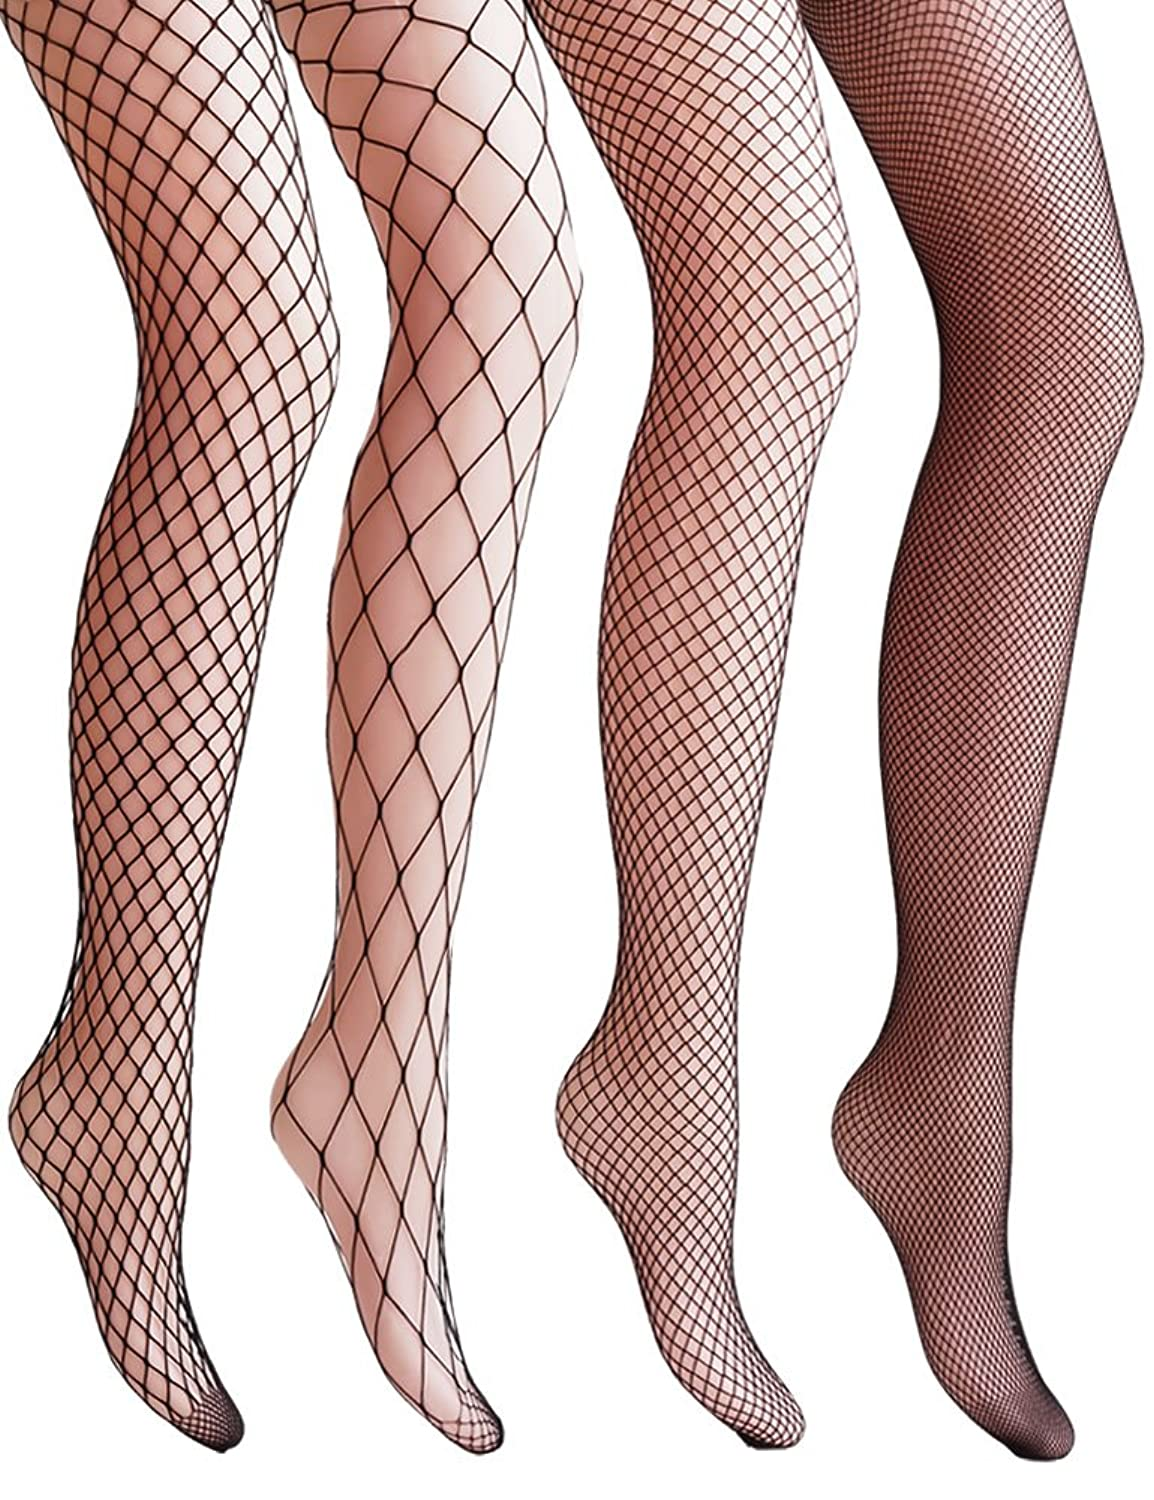 1920s Style Stockings & Socks Hollow Out Fishnet Pantyhose Tights $17.99 AT vintagedancer.com